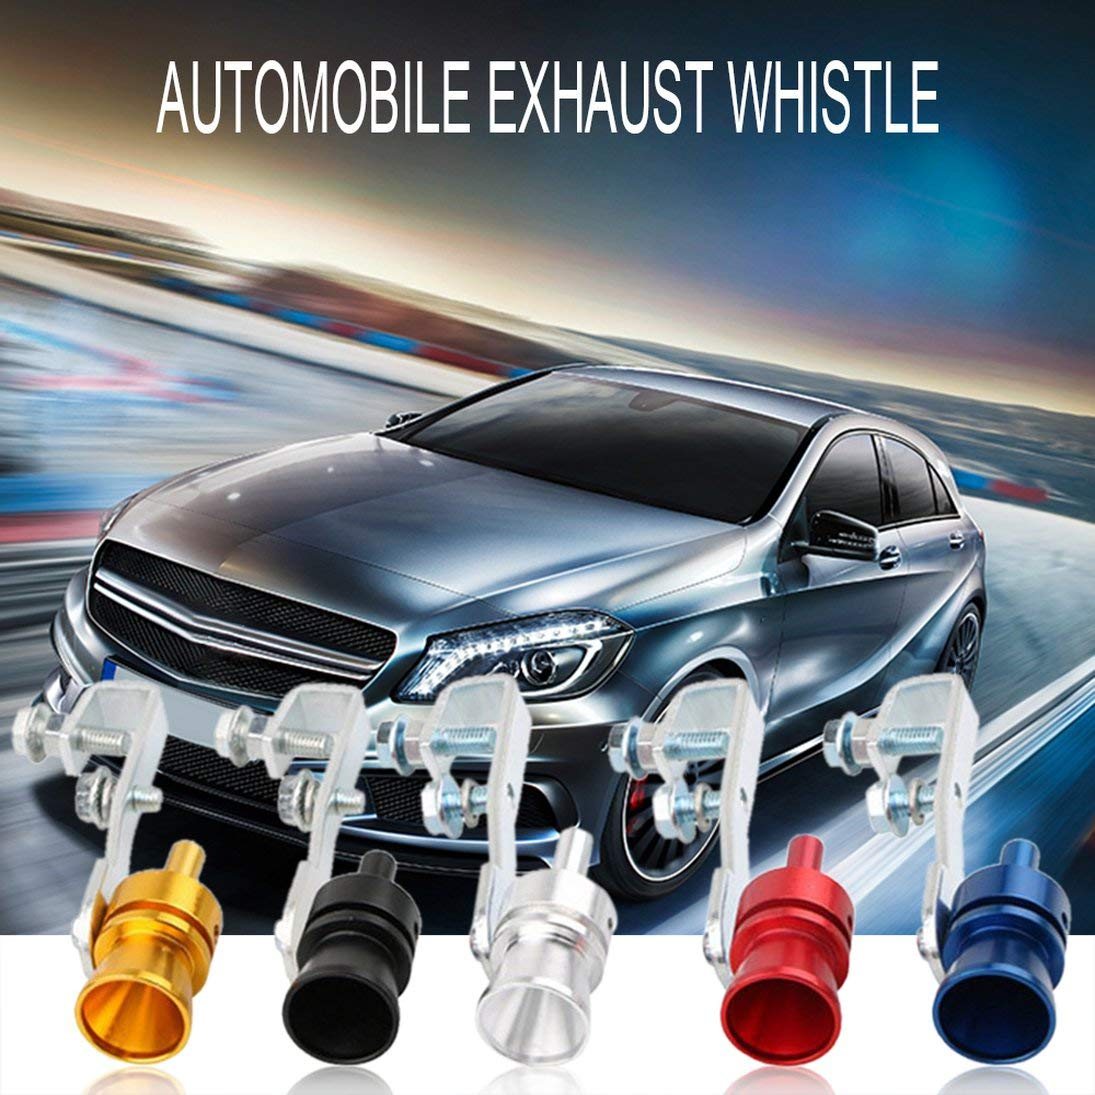 WEIHAN Exhaust Pipe Oversized Roar Maker Car Auto Loud Whistle Sound Maker Sliver